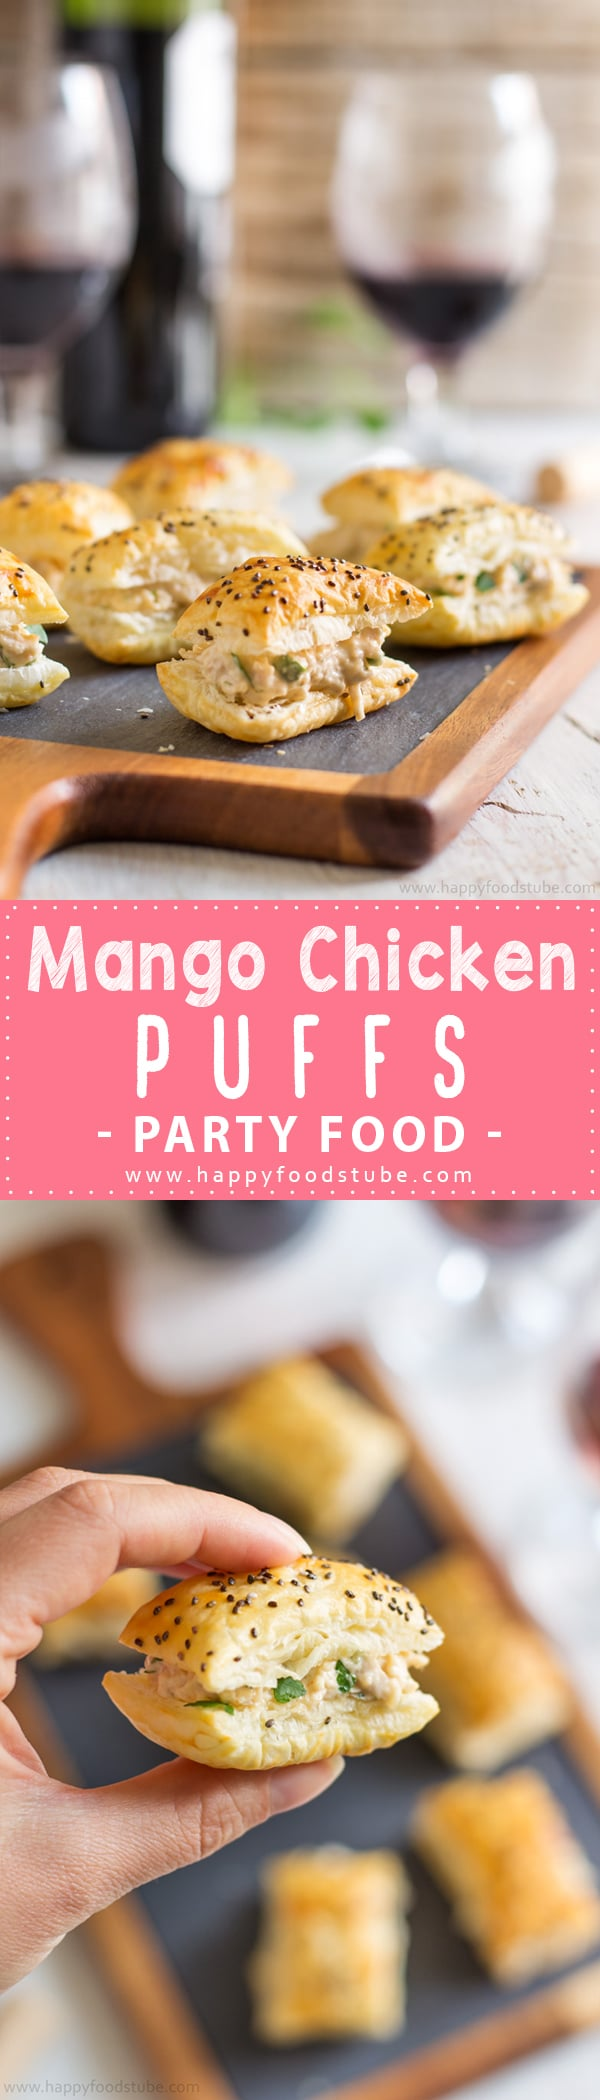 Mango chicken puffs appetizers video easy party food recipe mango chicken puffs are easy puff pastry appetizers ready in under 30 minutes perfect bite forumfinder Gallery